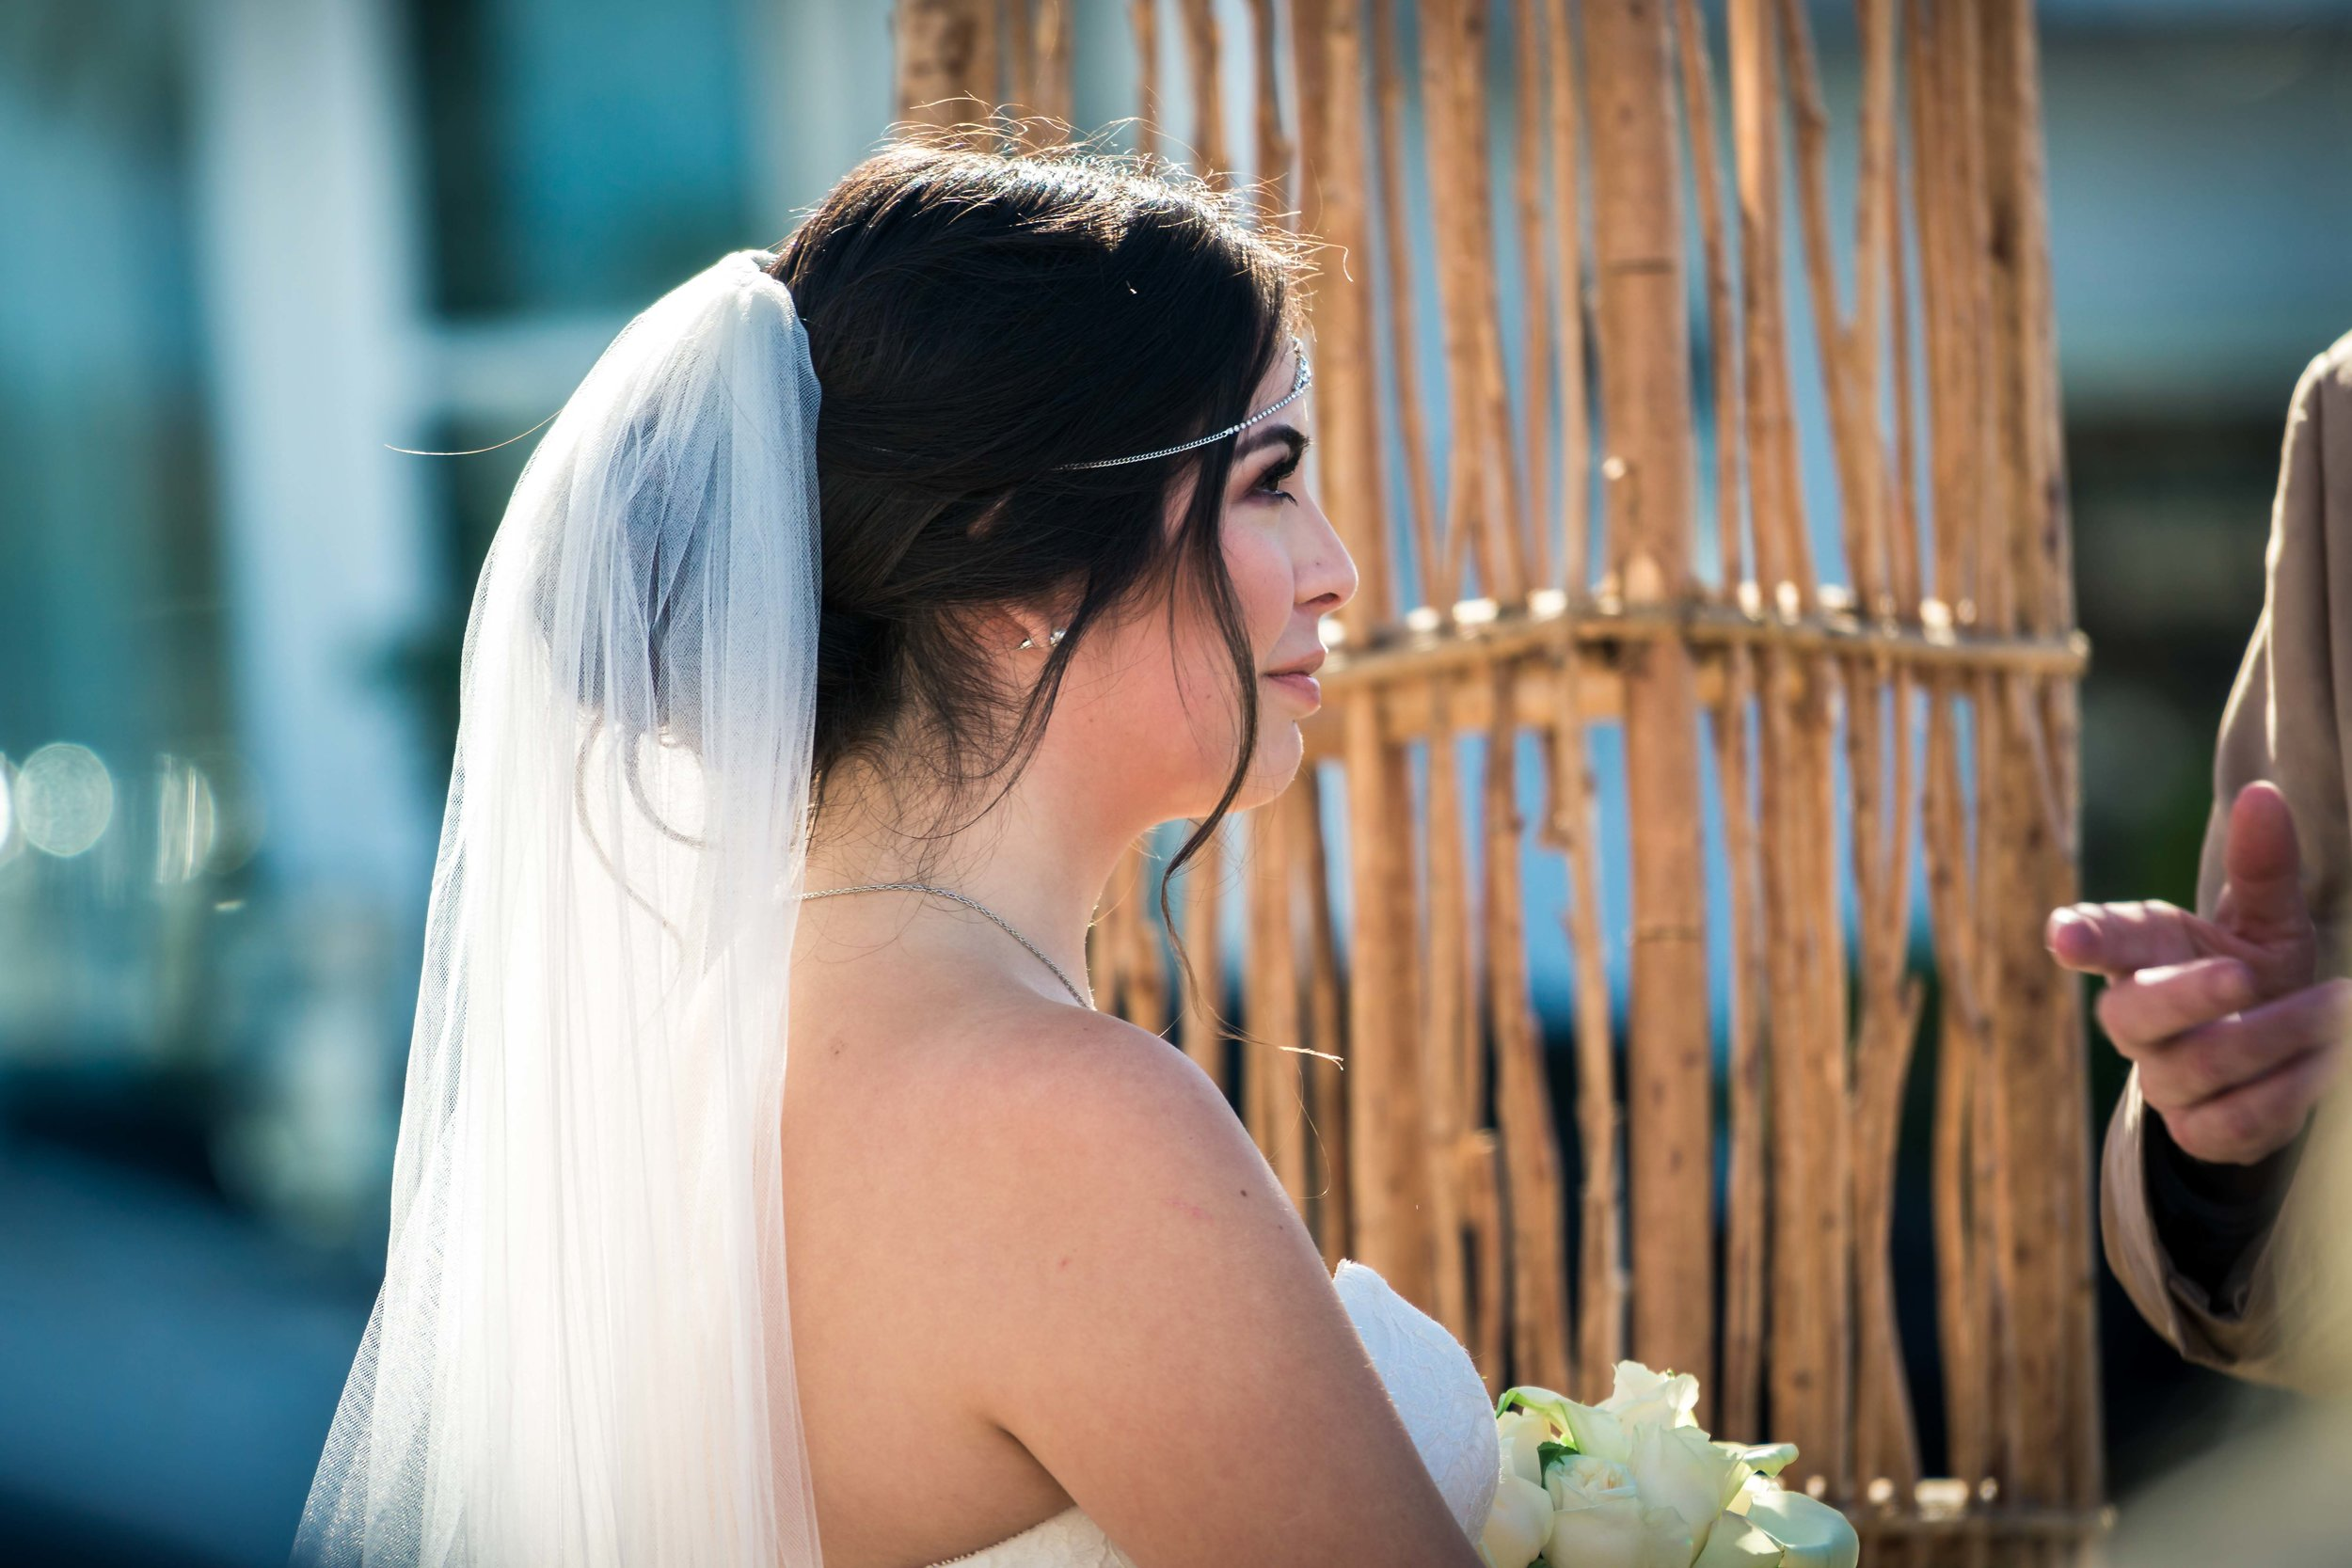 The bride with her veil at the alter